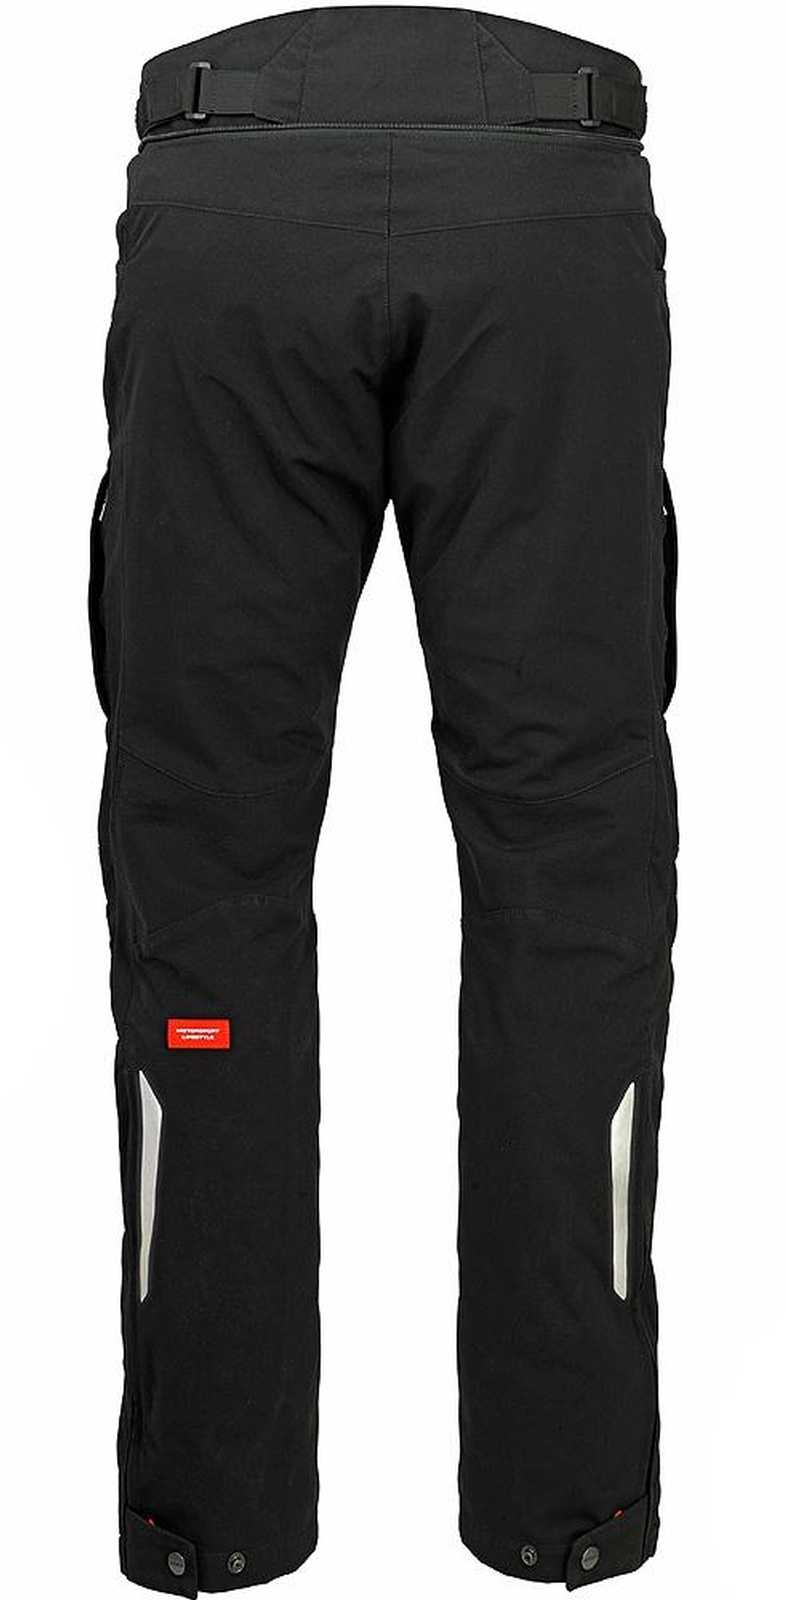 PANTALONE IMPERMEABILE INVERNALE THUNDER H2OUT